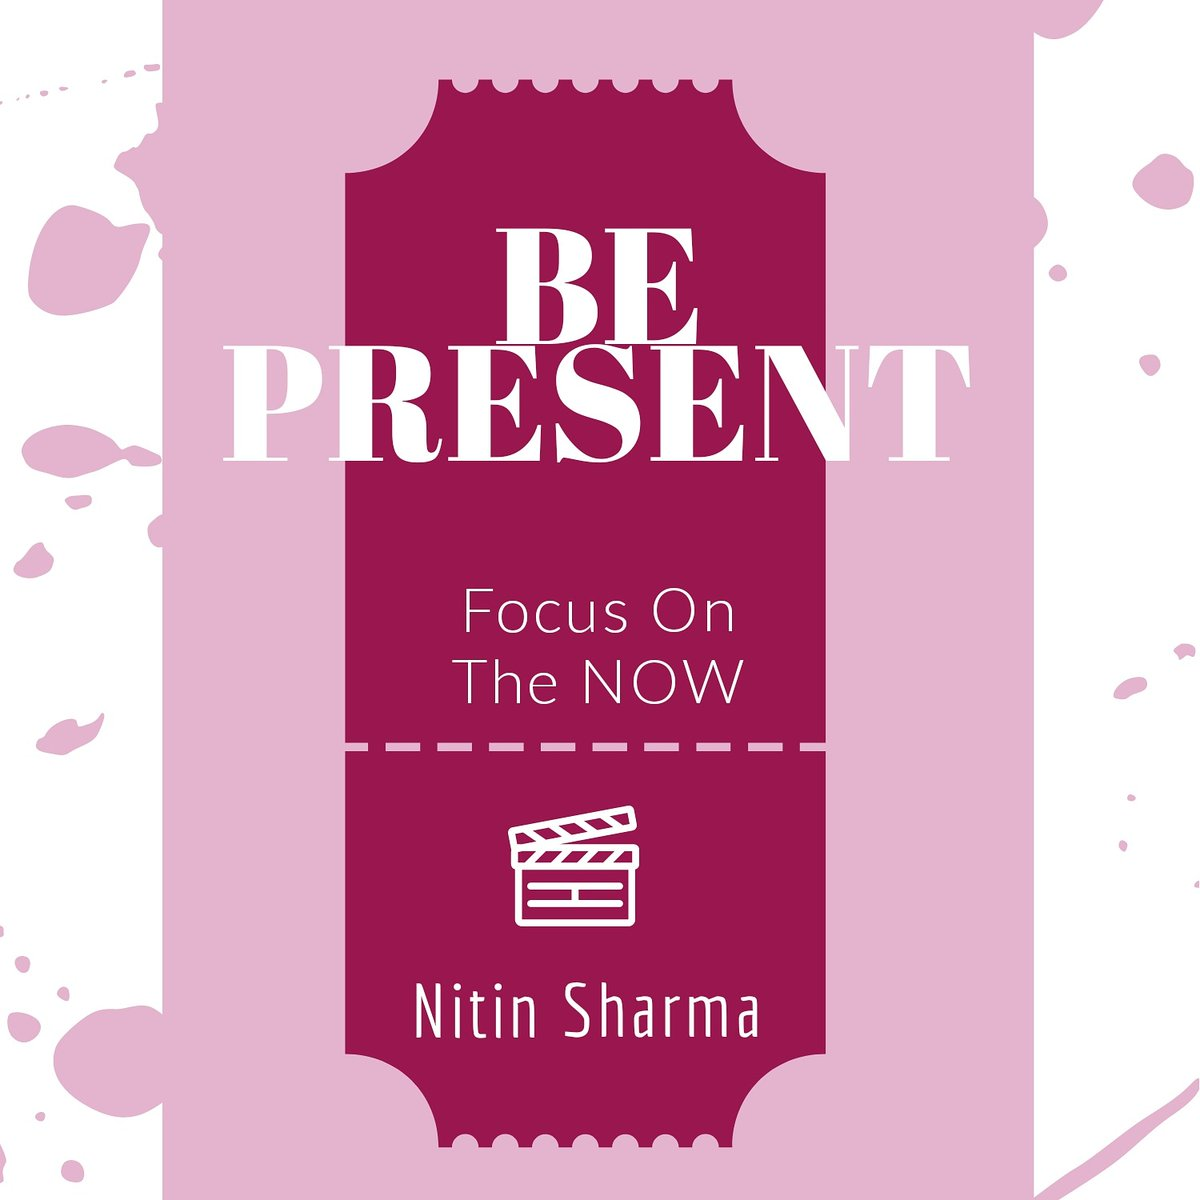 Good Morning Guys !!! Here's Wishing You All A Happy Mid-week Ahead... #wednesdaymotivation #wednesdaywisdom #quote #wisdomquote #quoteoftoday #instaquote #quotes #quoteoftheday #present #bepresent #focus #now #foodforthought #thoughtoftheday #instathoughts #goodmorningpostpic.twitter.com/iSvtffhDNA